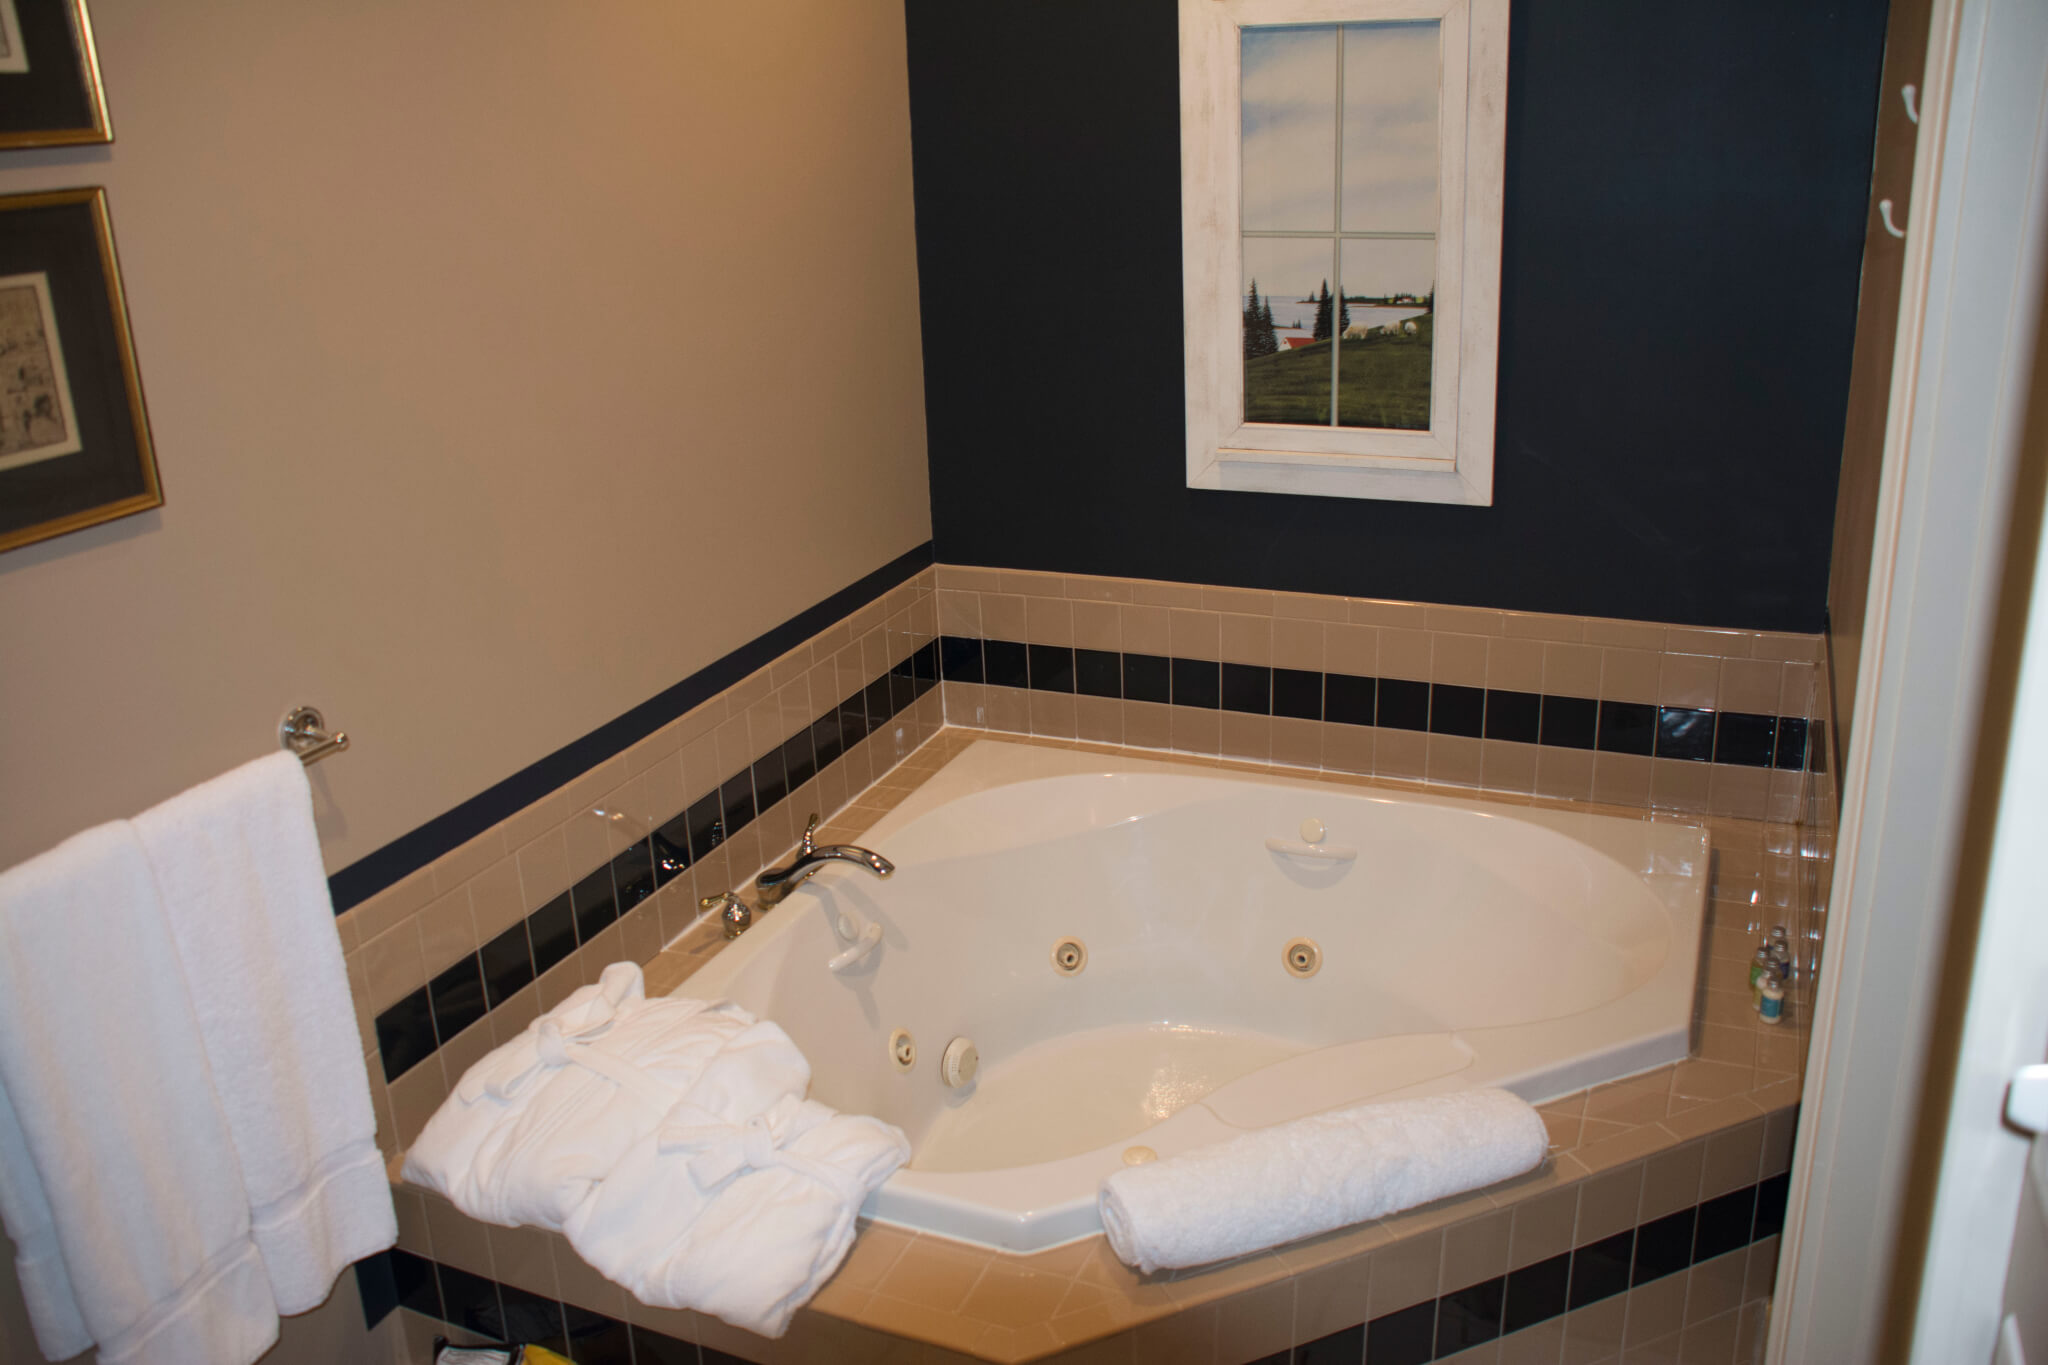 Jetted tub in the corner of the room with towels and bathrobes